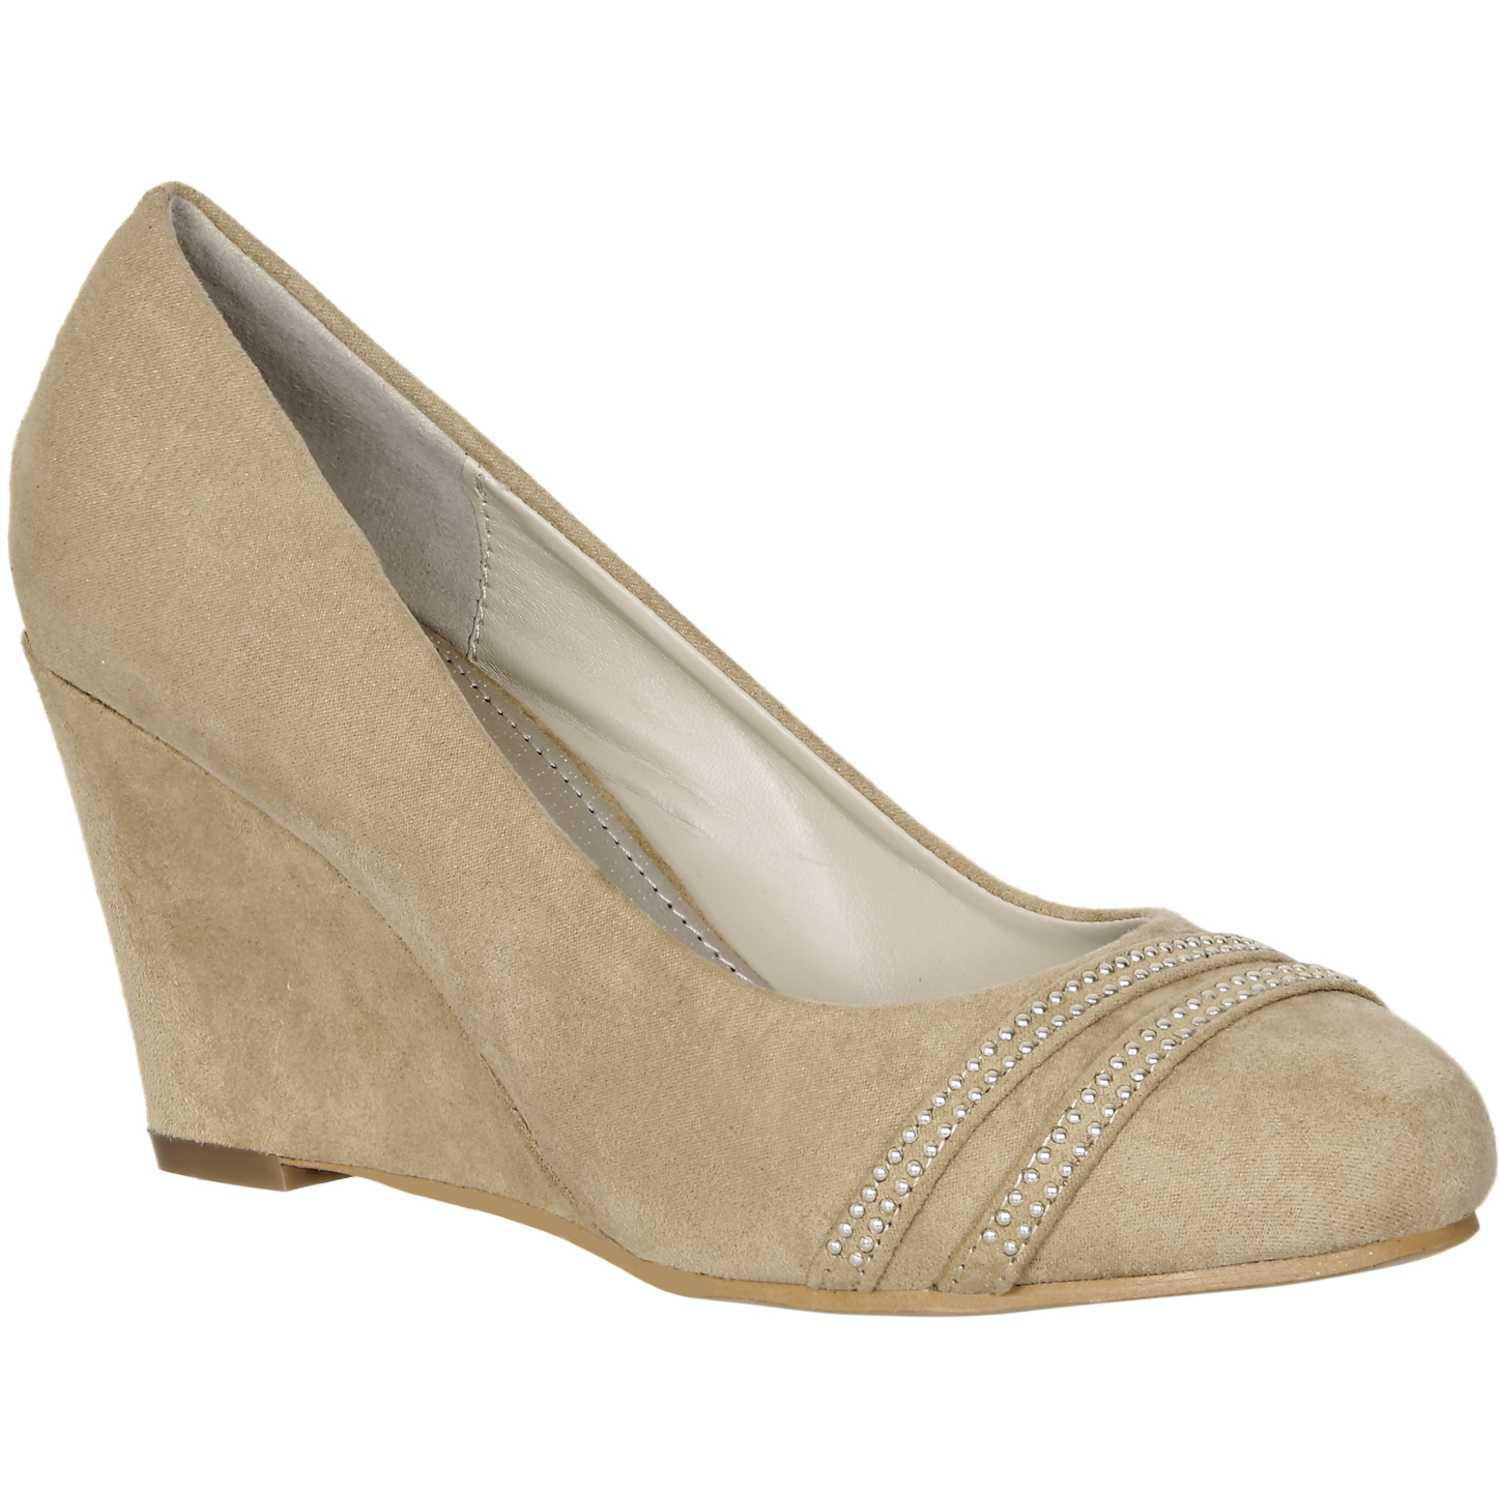 Platanitos cw 9123 Beige Estiletos y Pumps